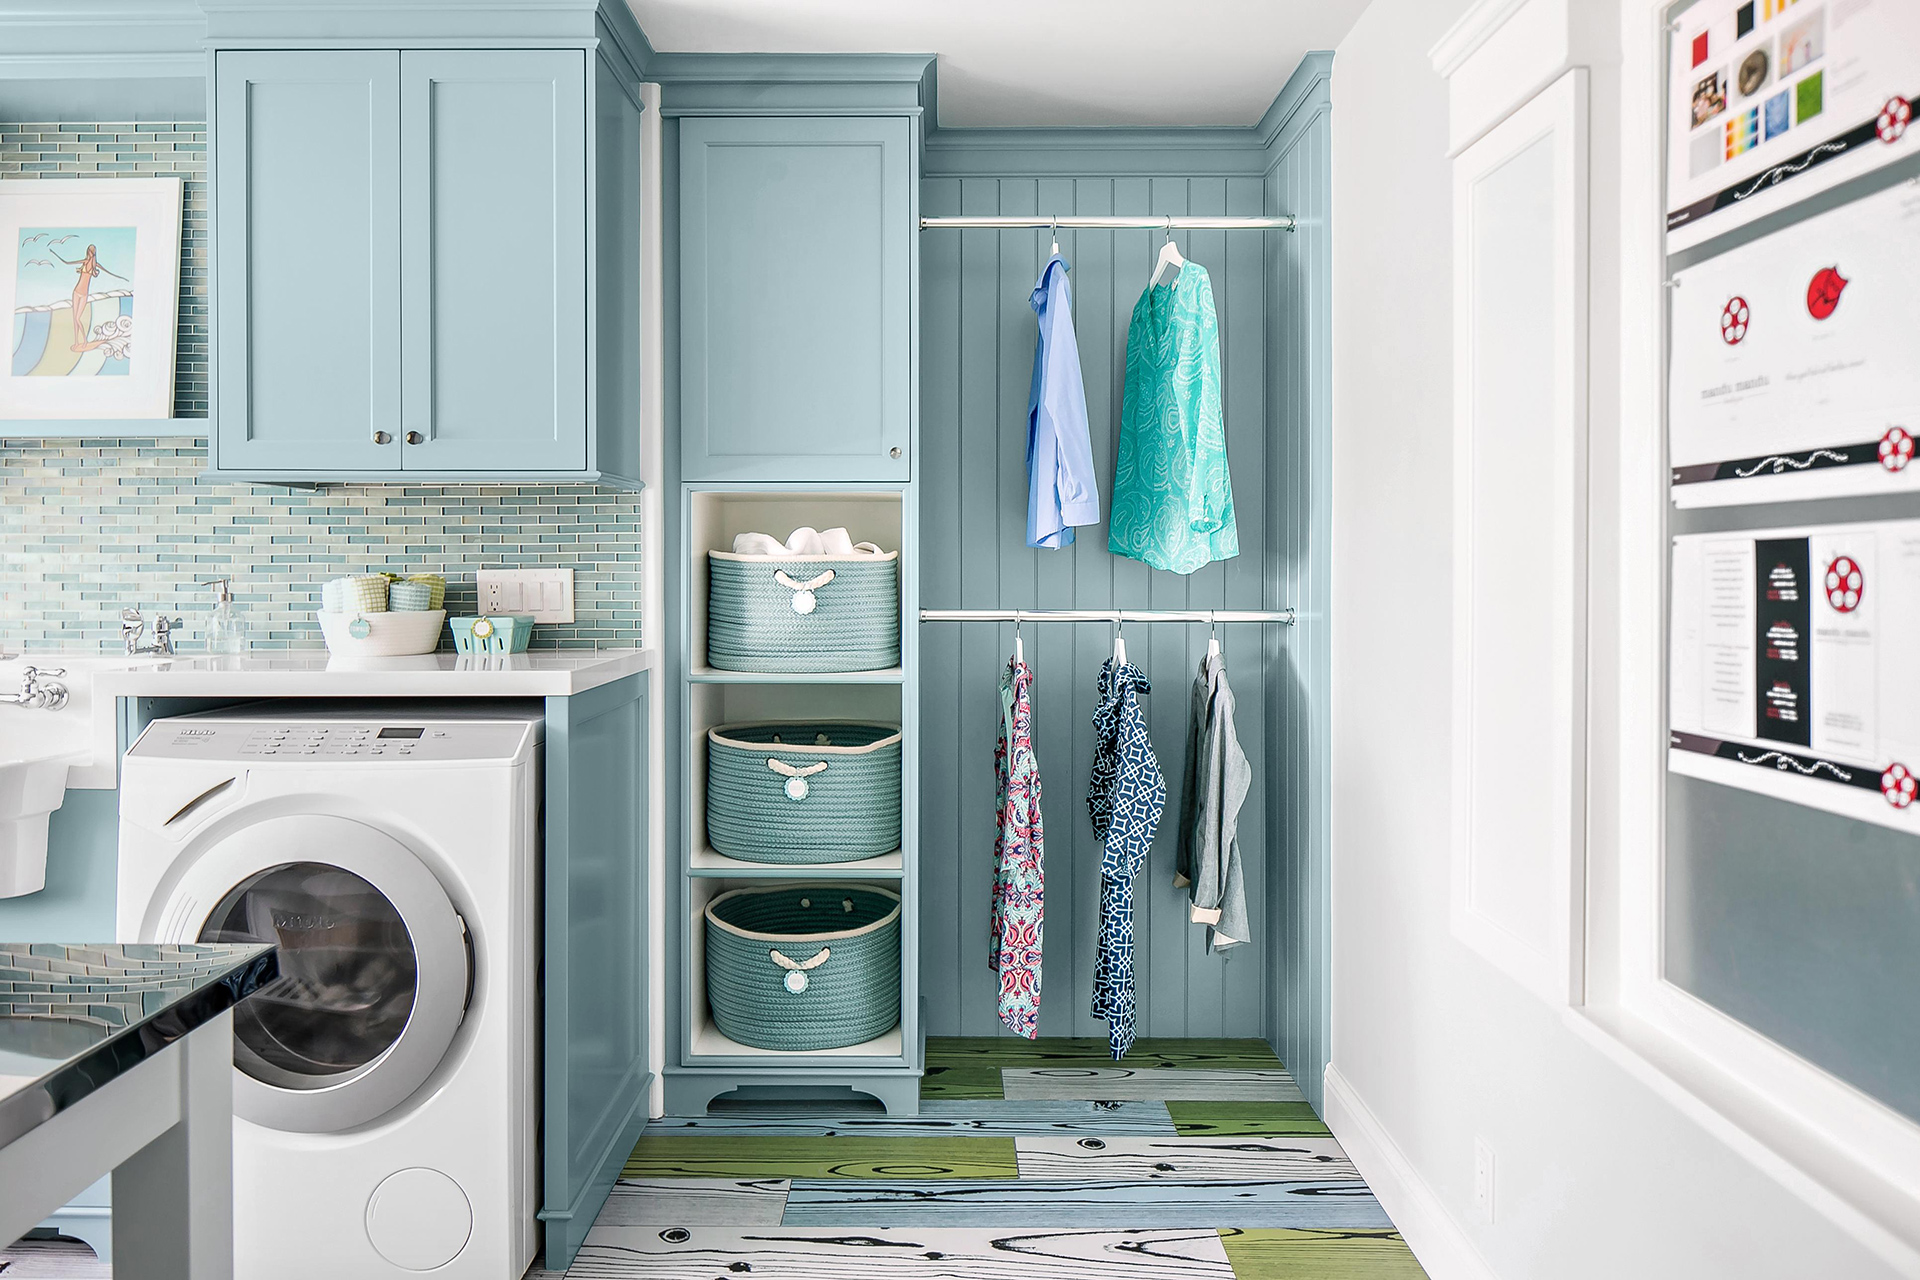 laundry room with rods for drying clothes